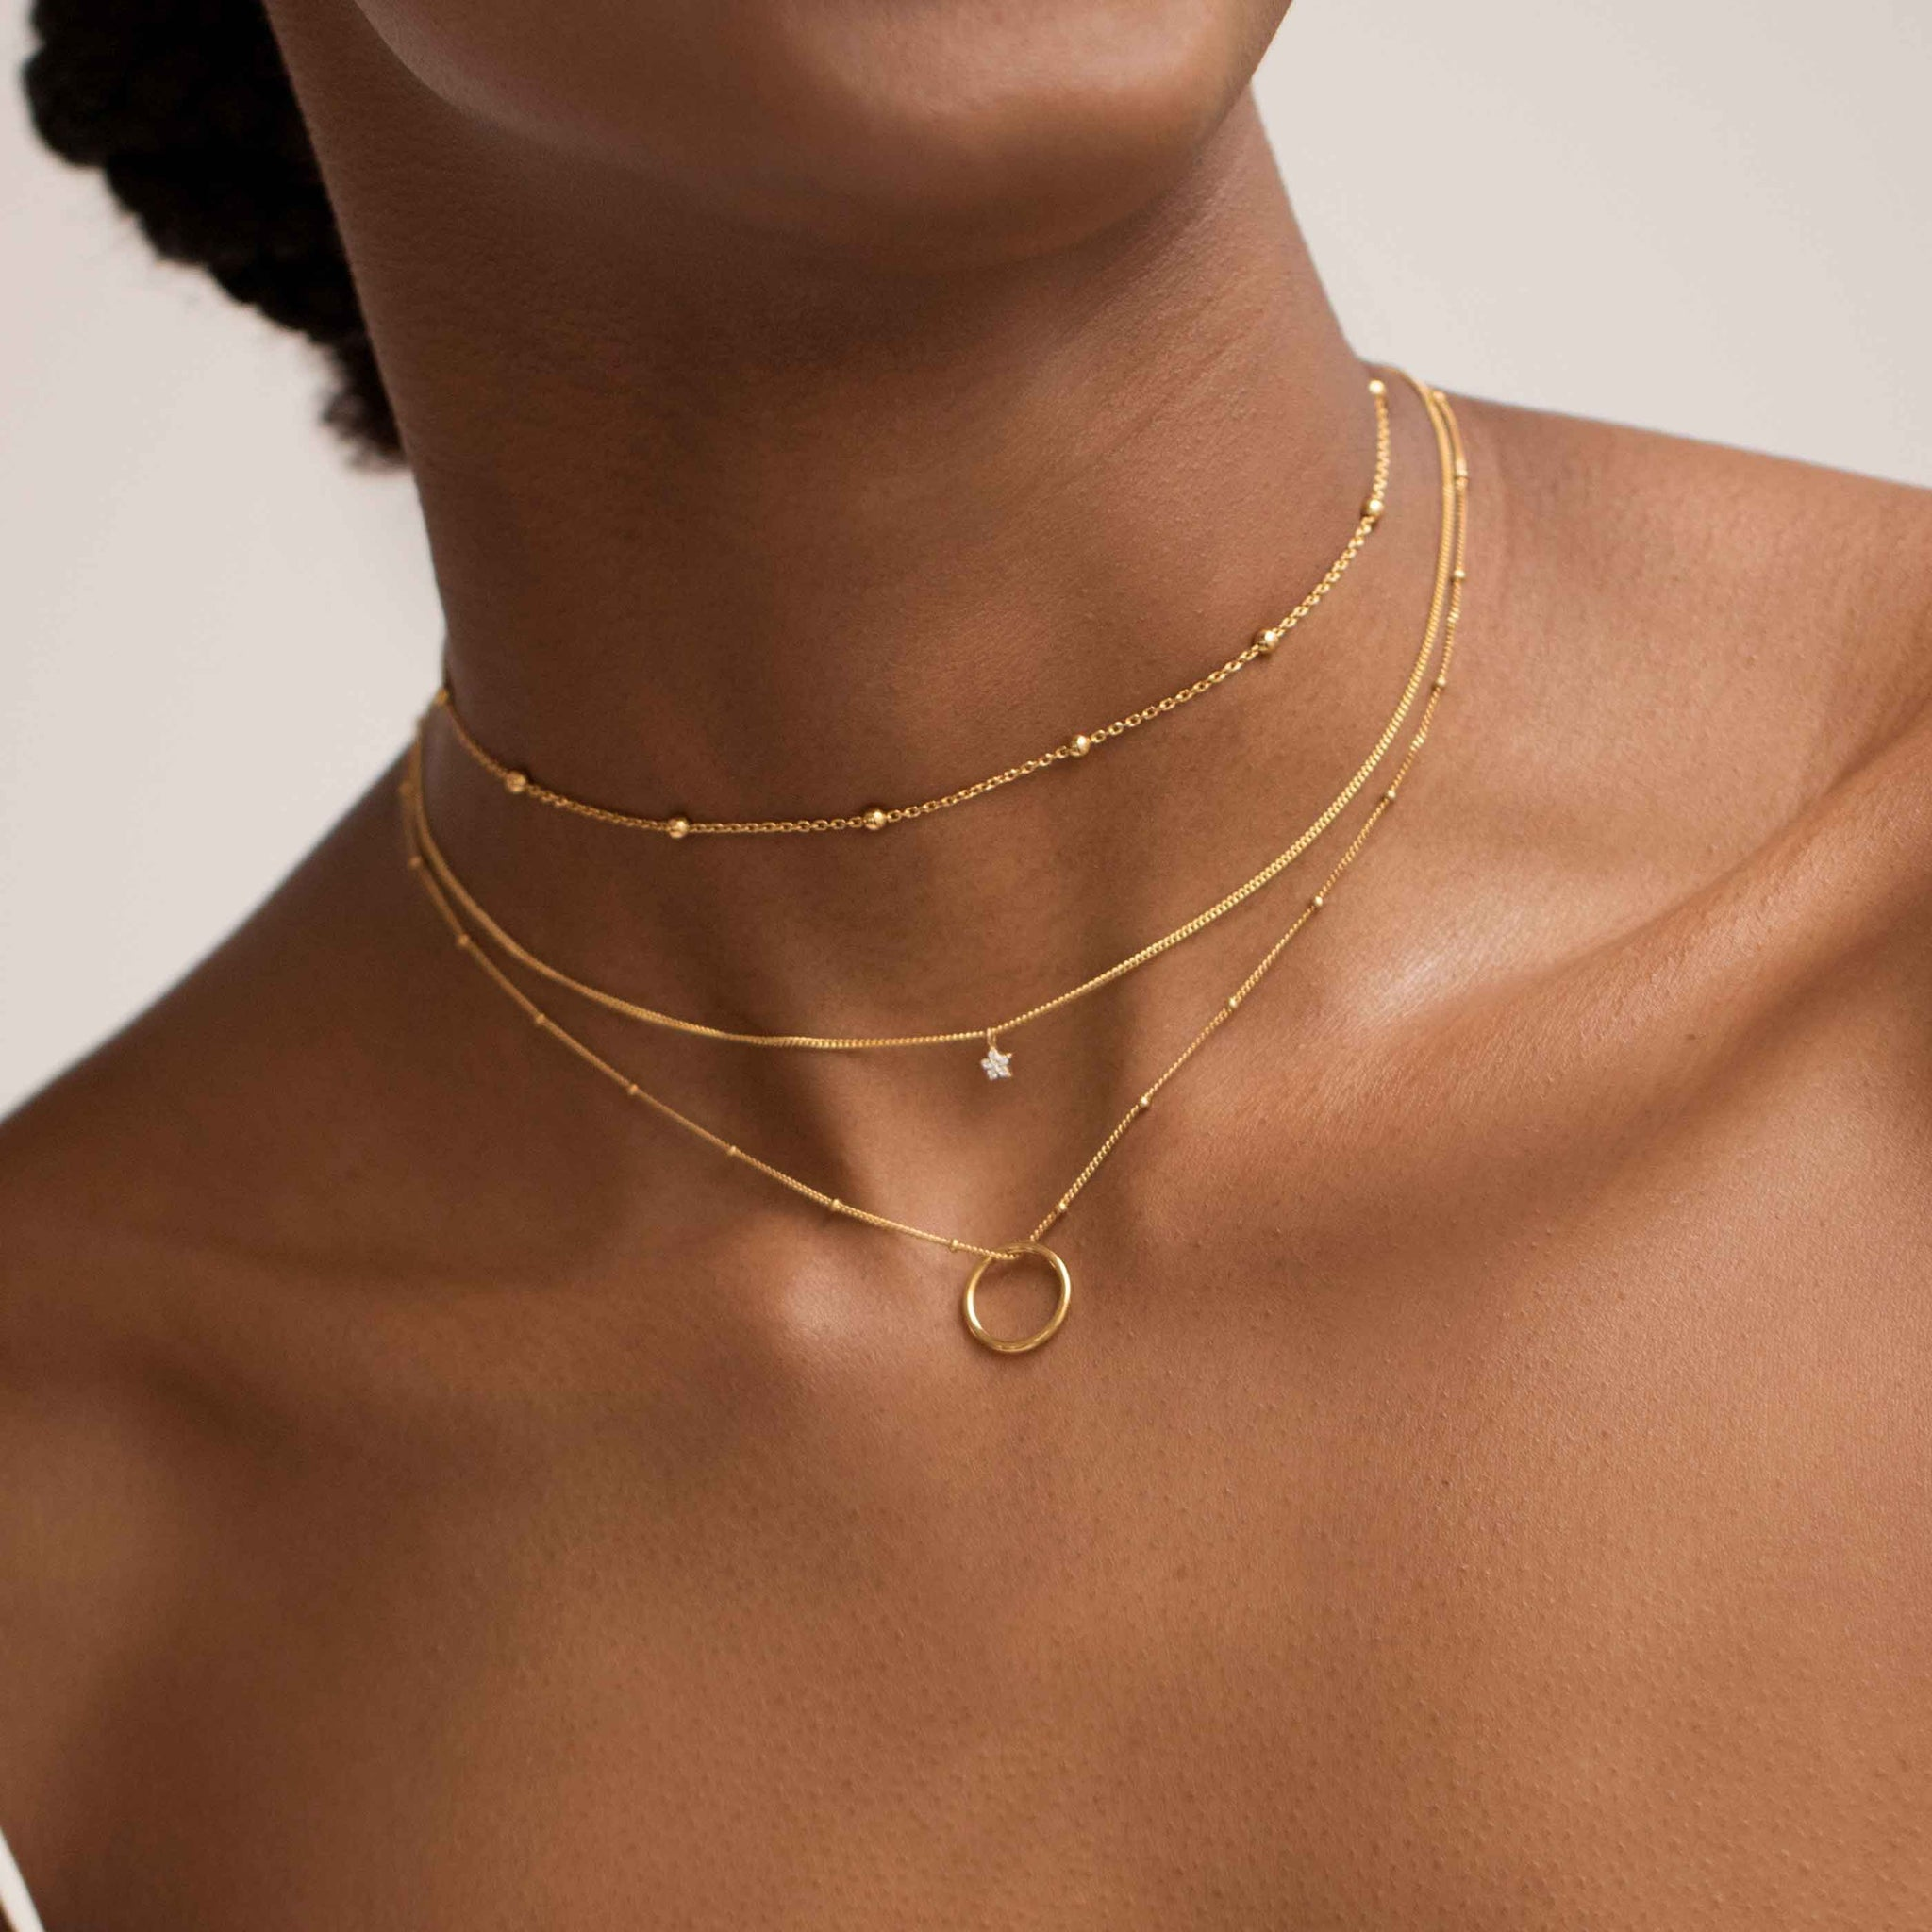 Basic Halo Pendant Necklace in Gold worn with gold necklaces